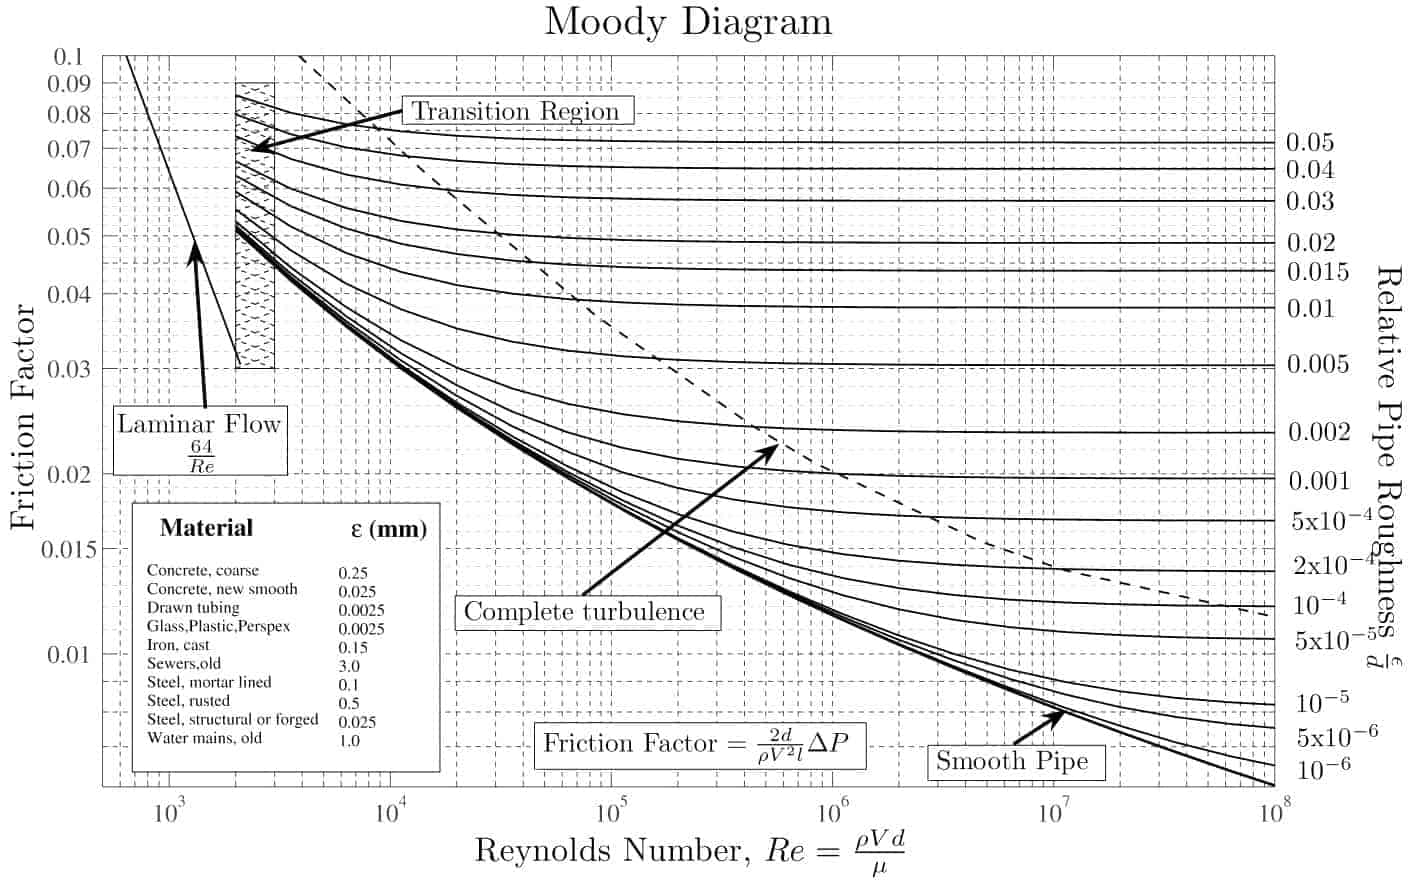 Diagramme Moody